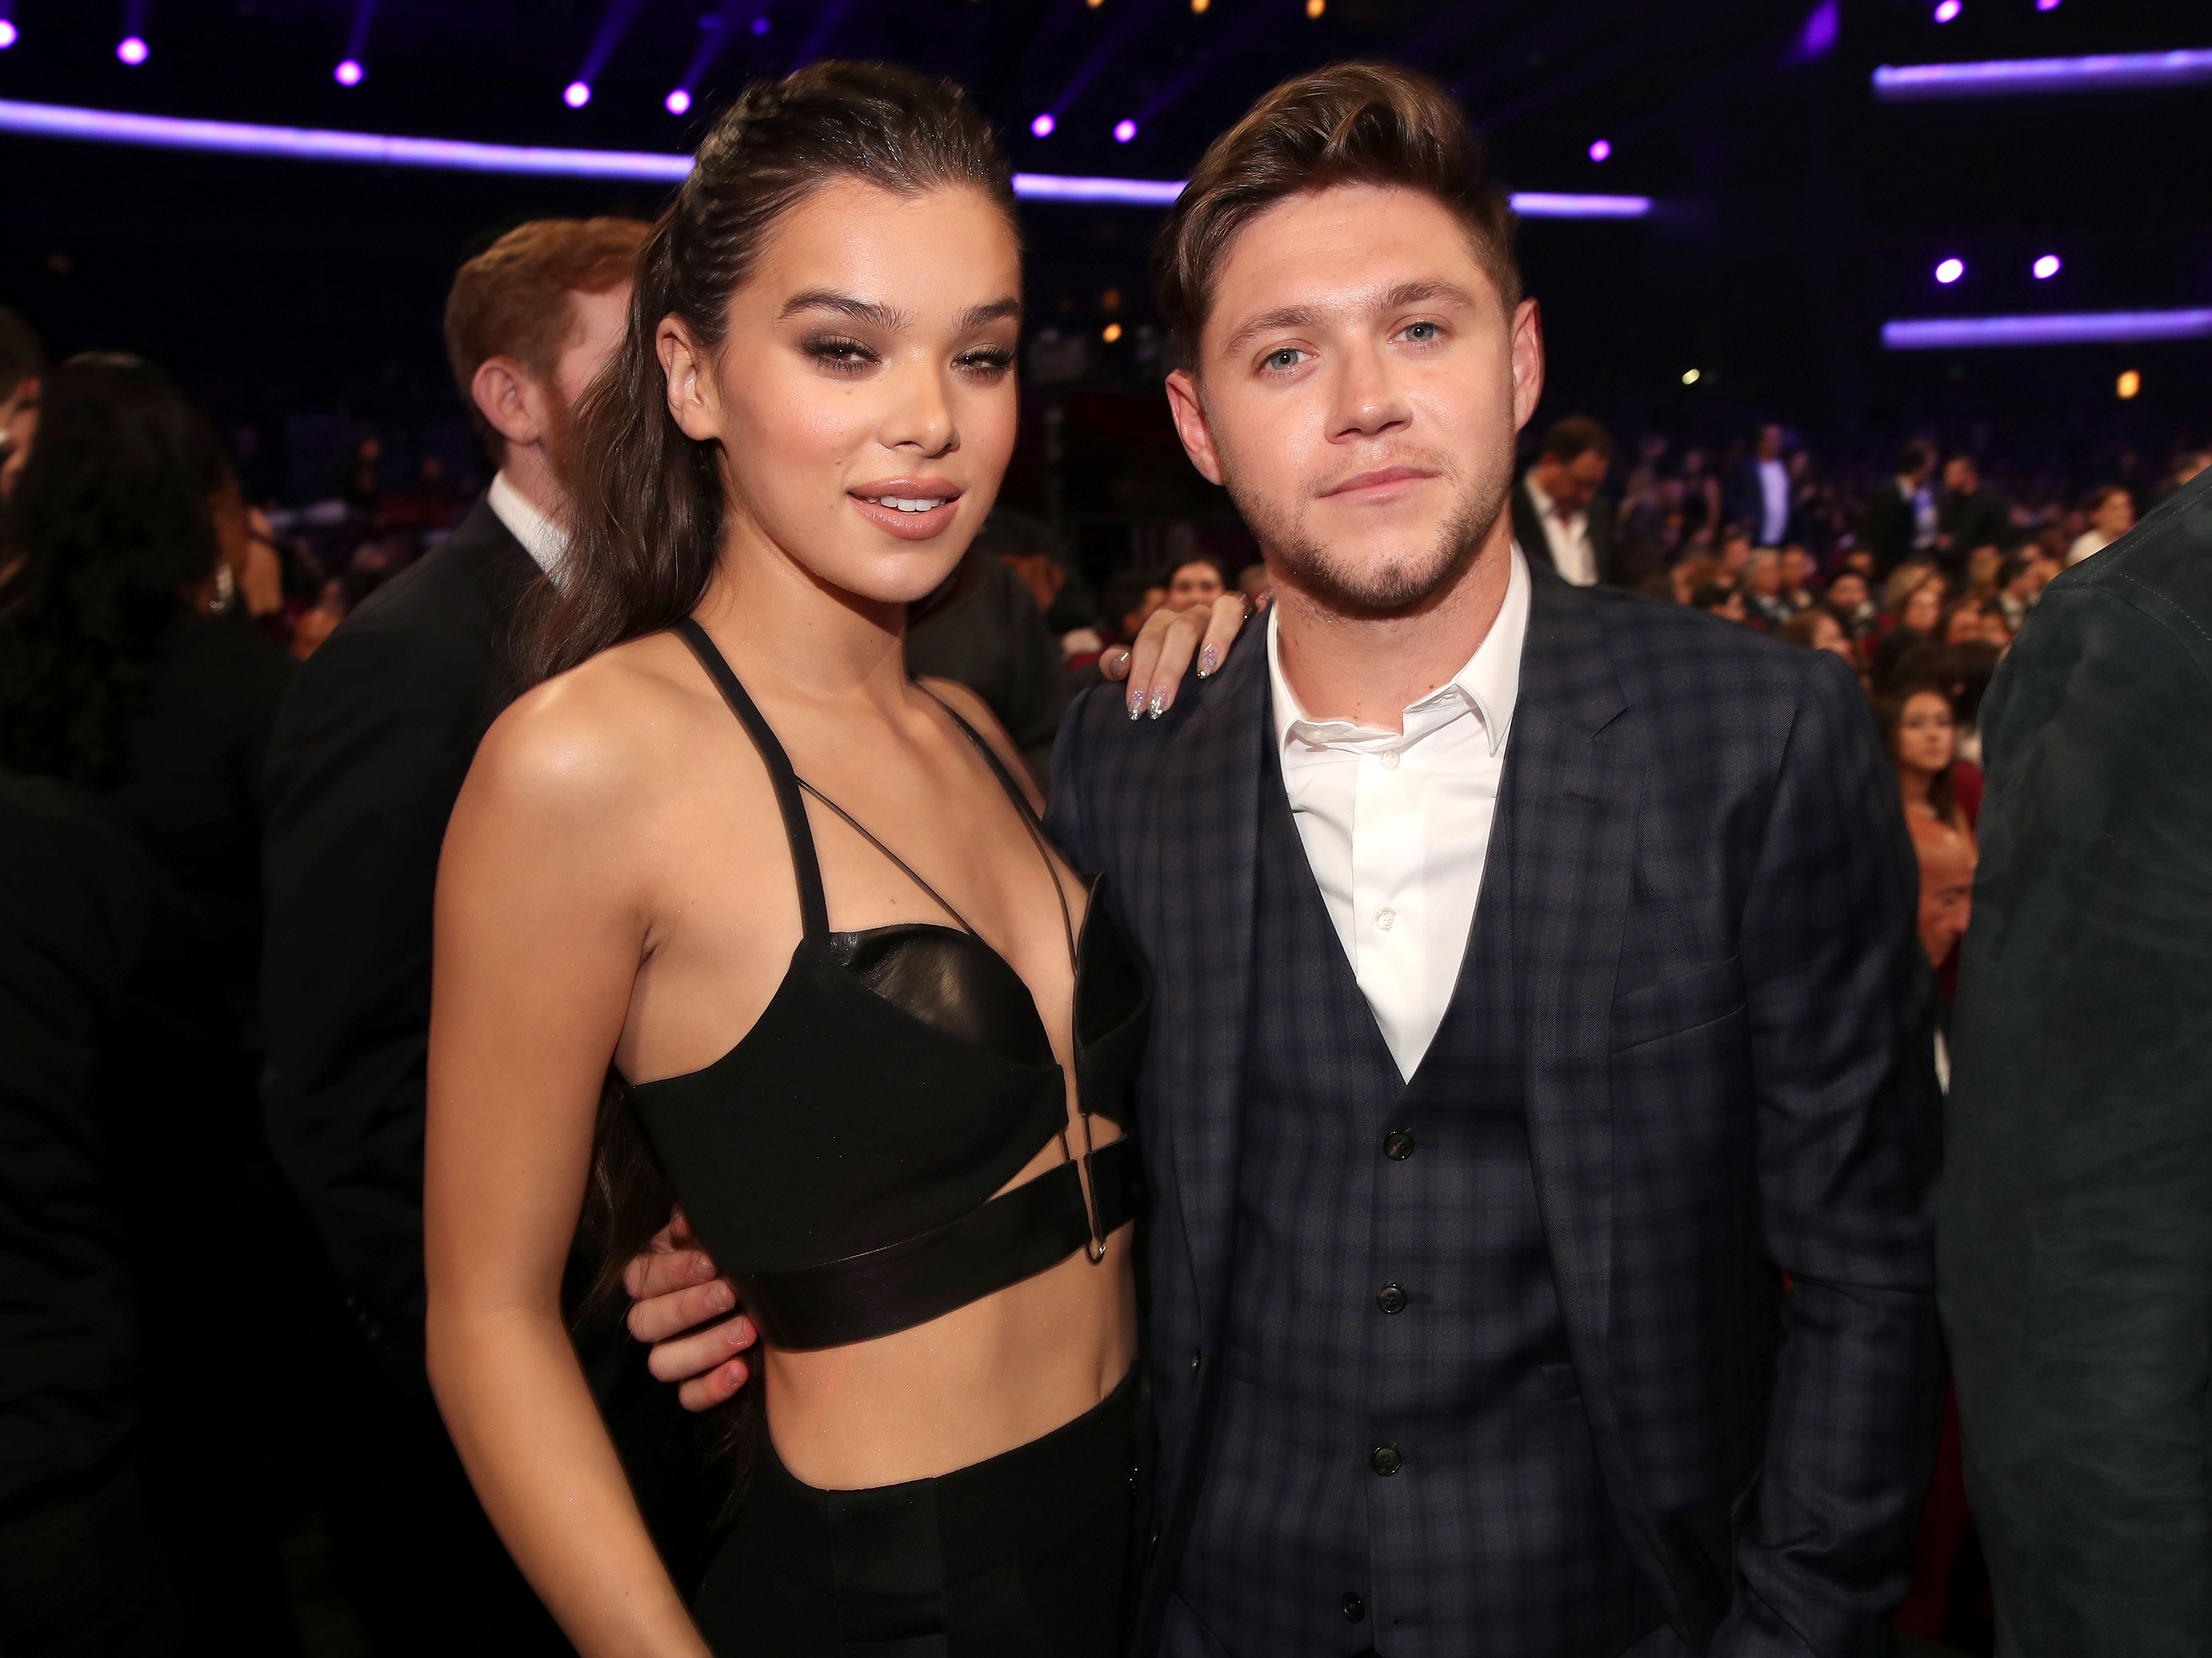 Hailee Steinfeld Shoots Down Rumors That She Threw Shade at Ex Niall Horan - Hailee Steinfeld and Niall Horan at the 2017 American Music Awards in Los Angeles on November 19, 2017.